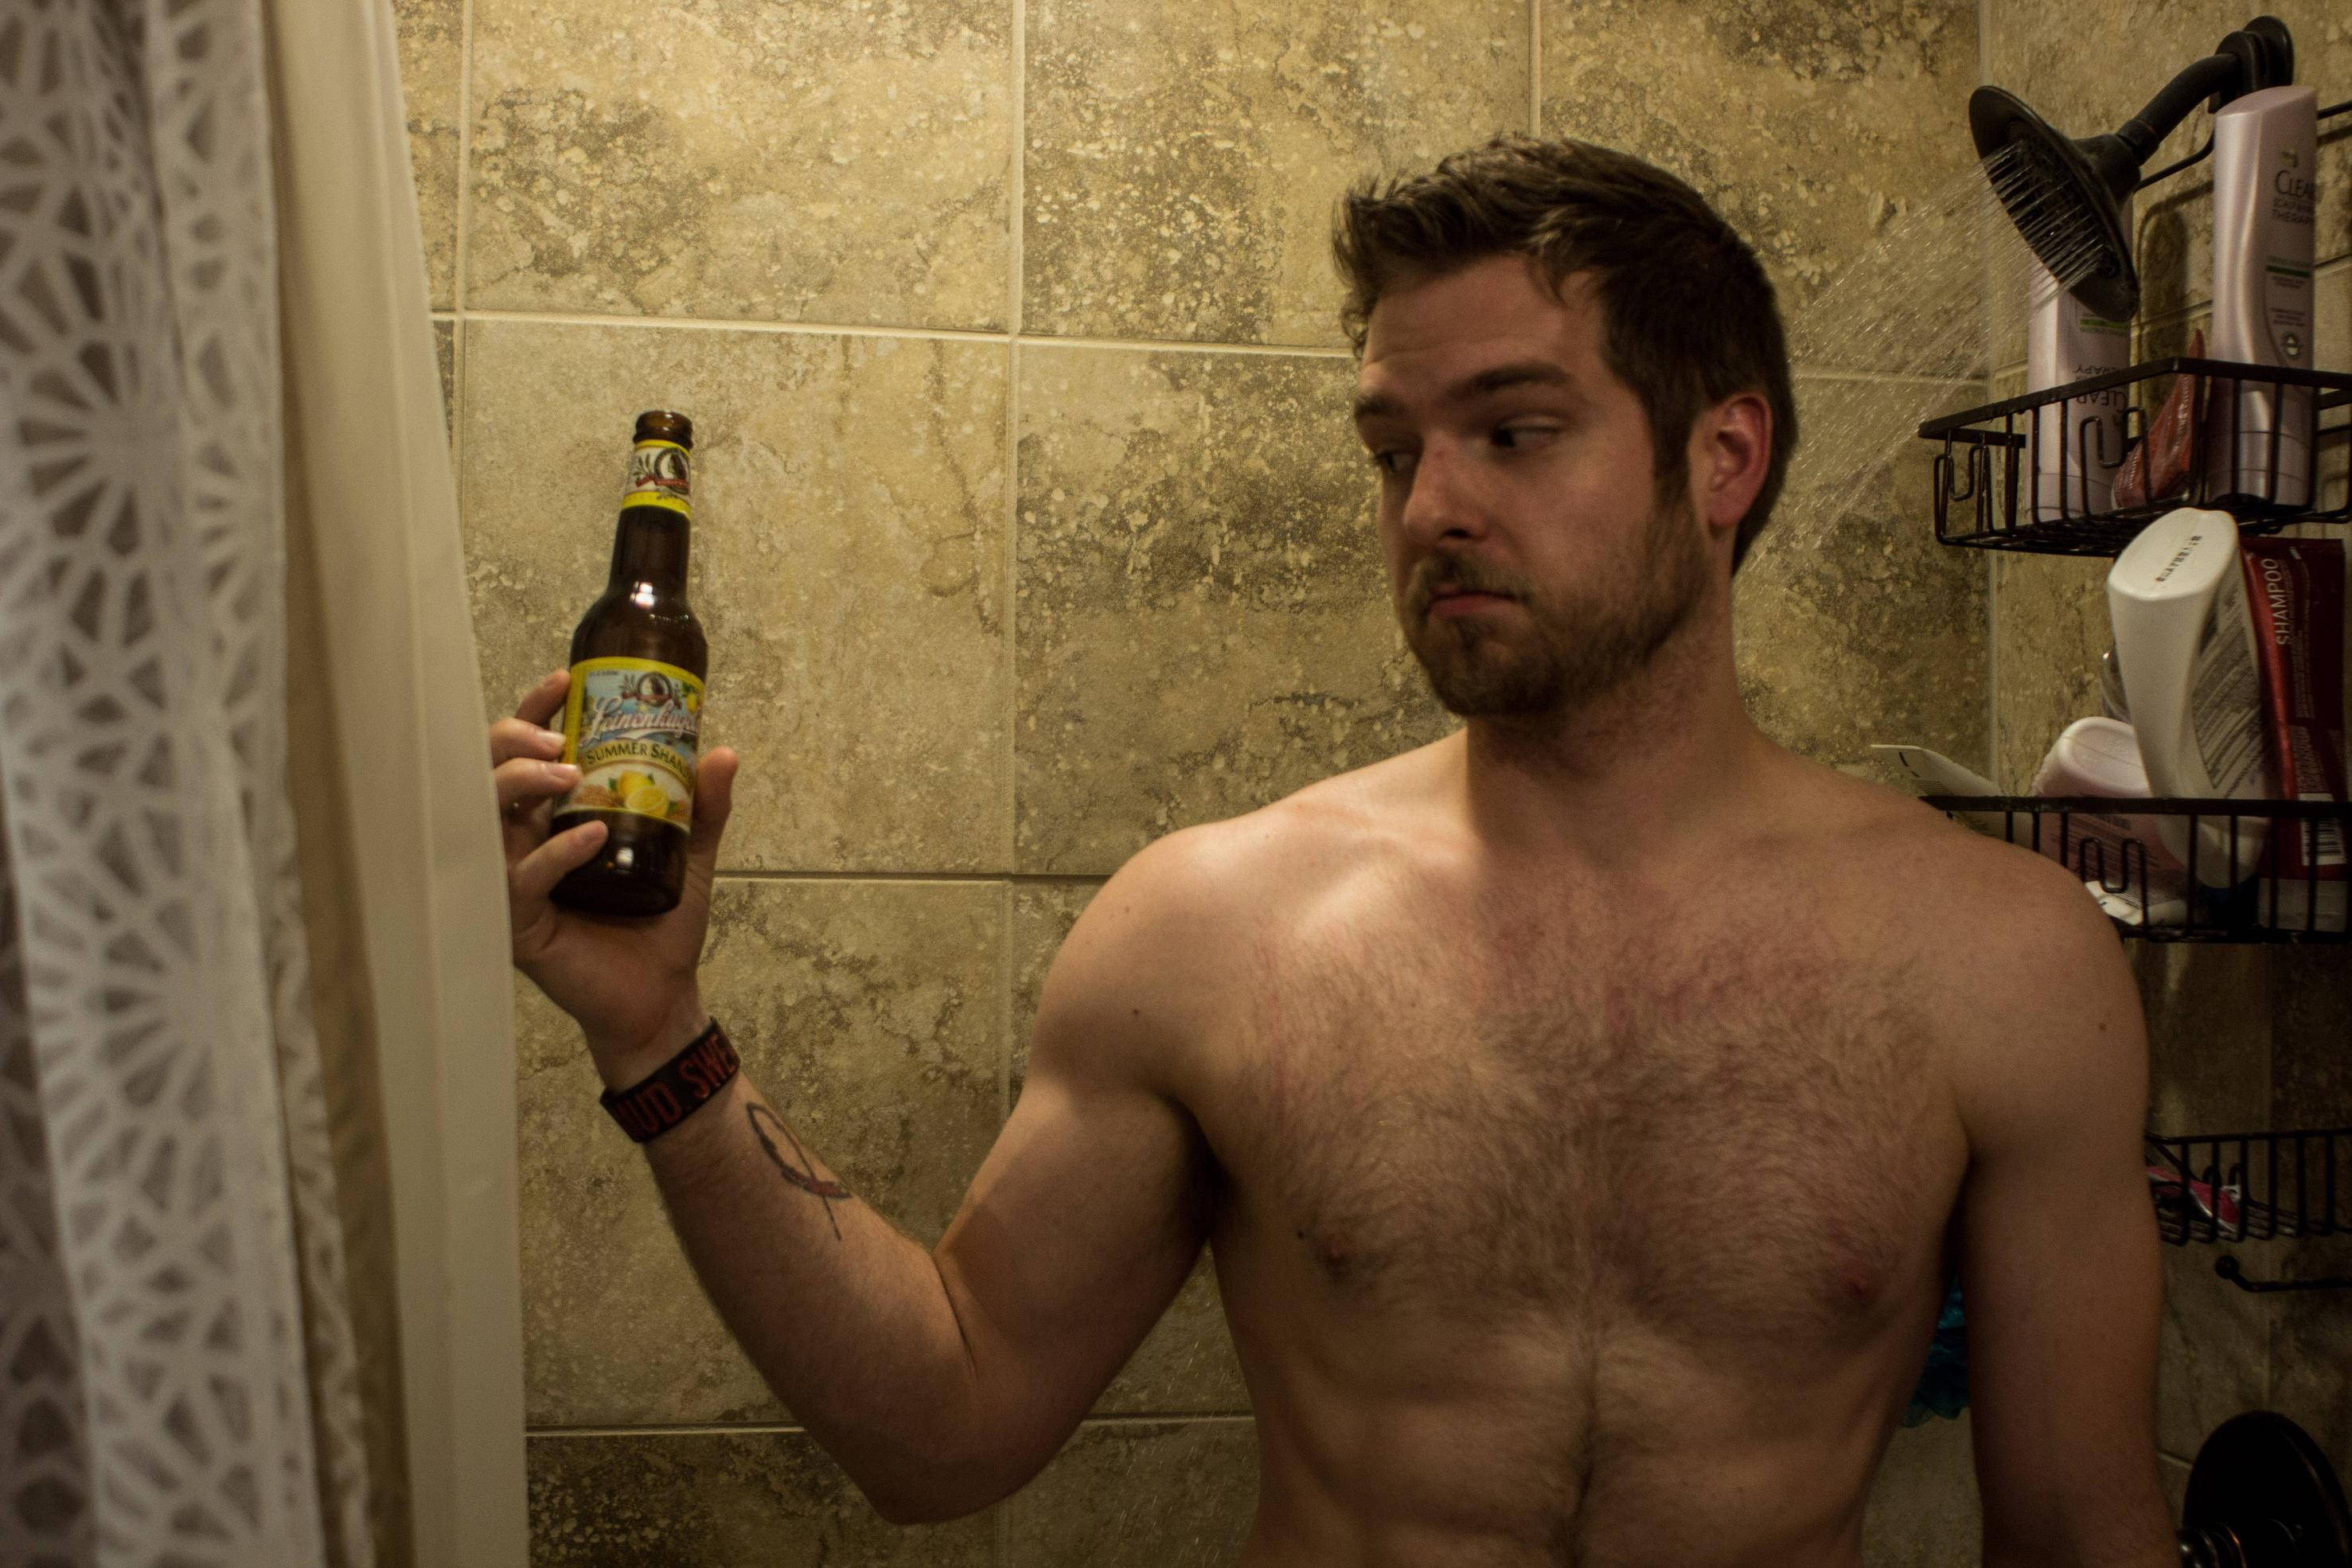 Sexy beer shower commercial